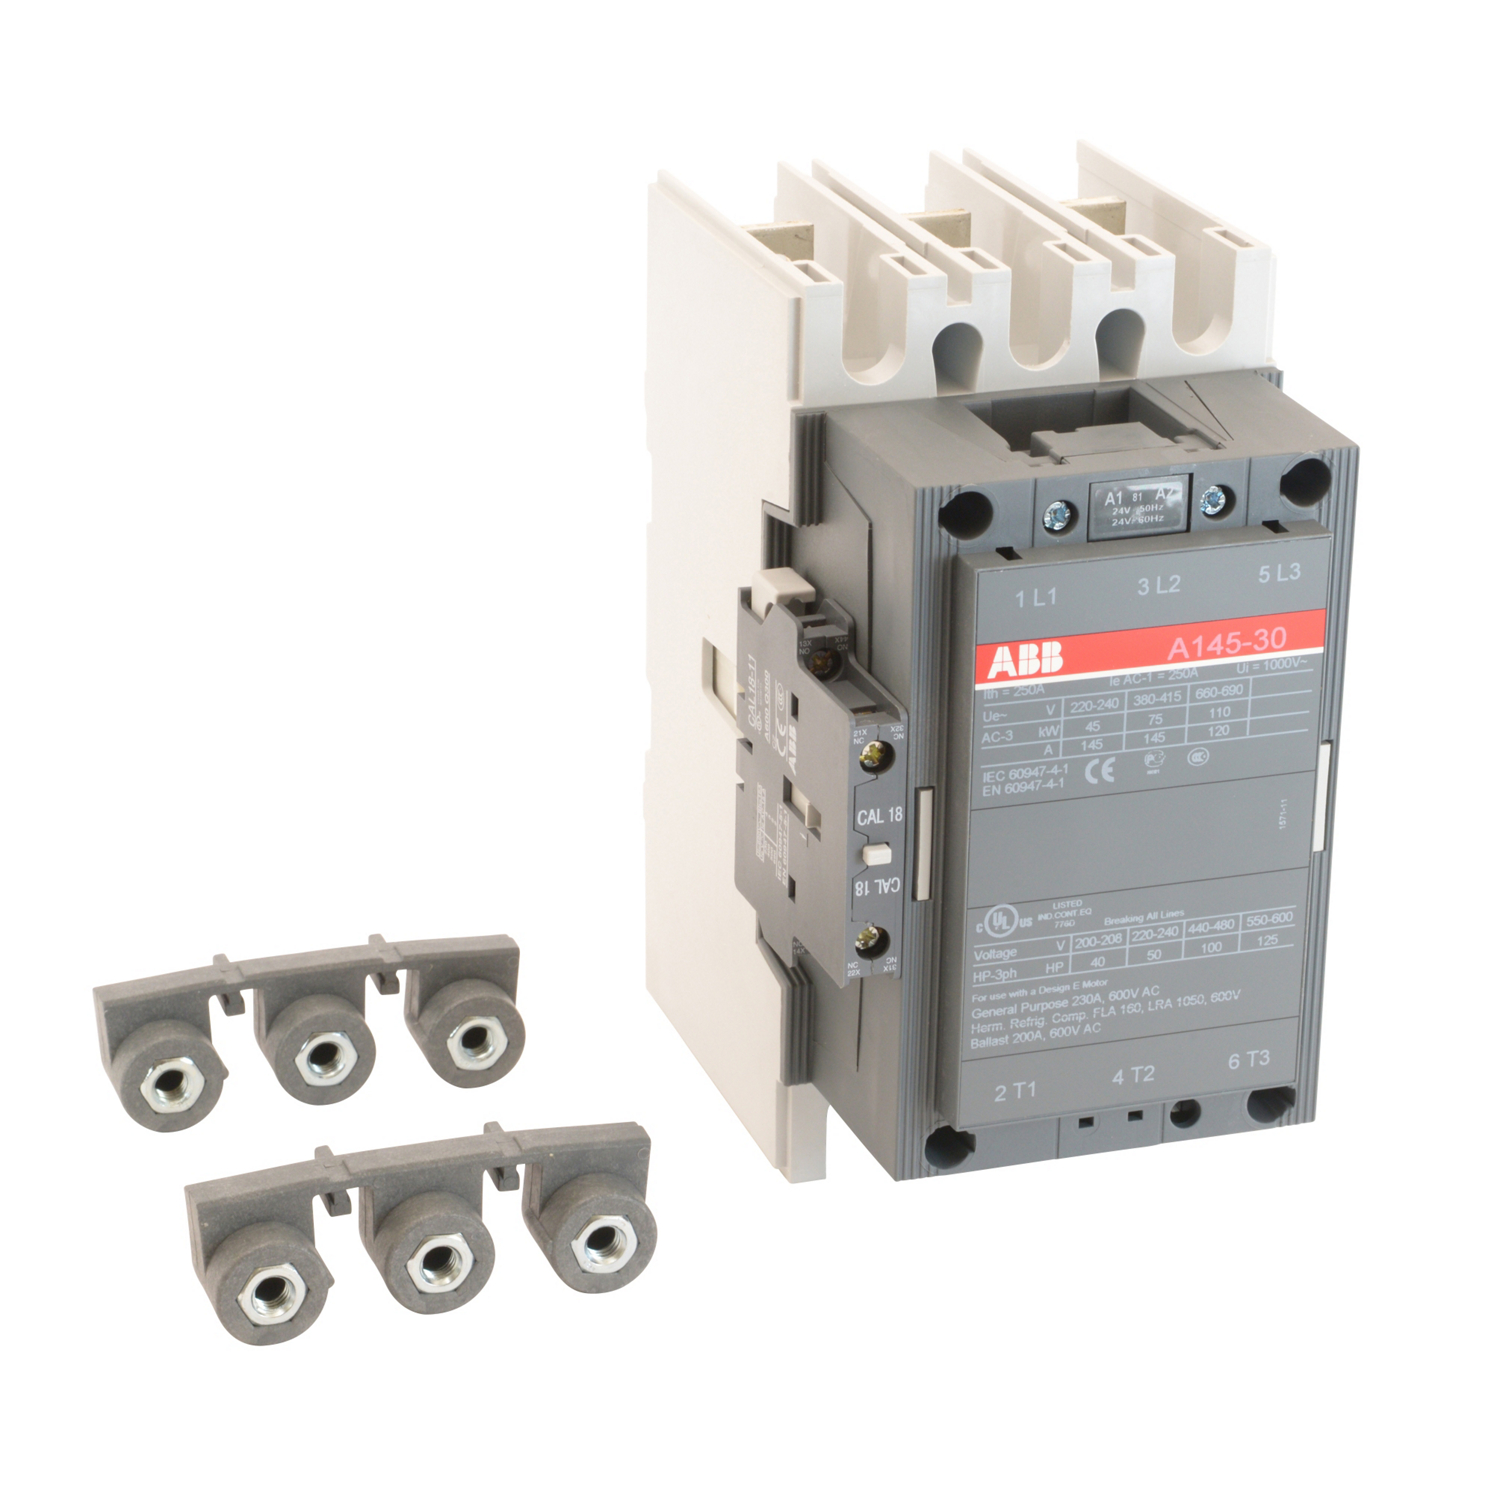 3 pole, 230 amp, non-reversing across the line contactor with 24V AC · ABB  CONTROL A145-30-11-81